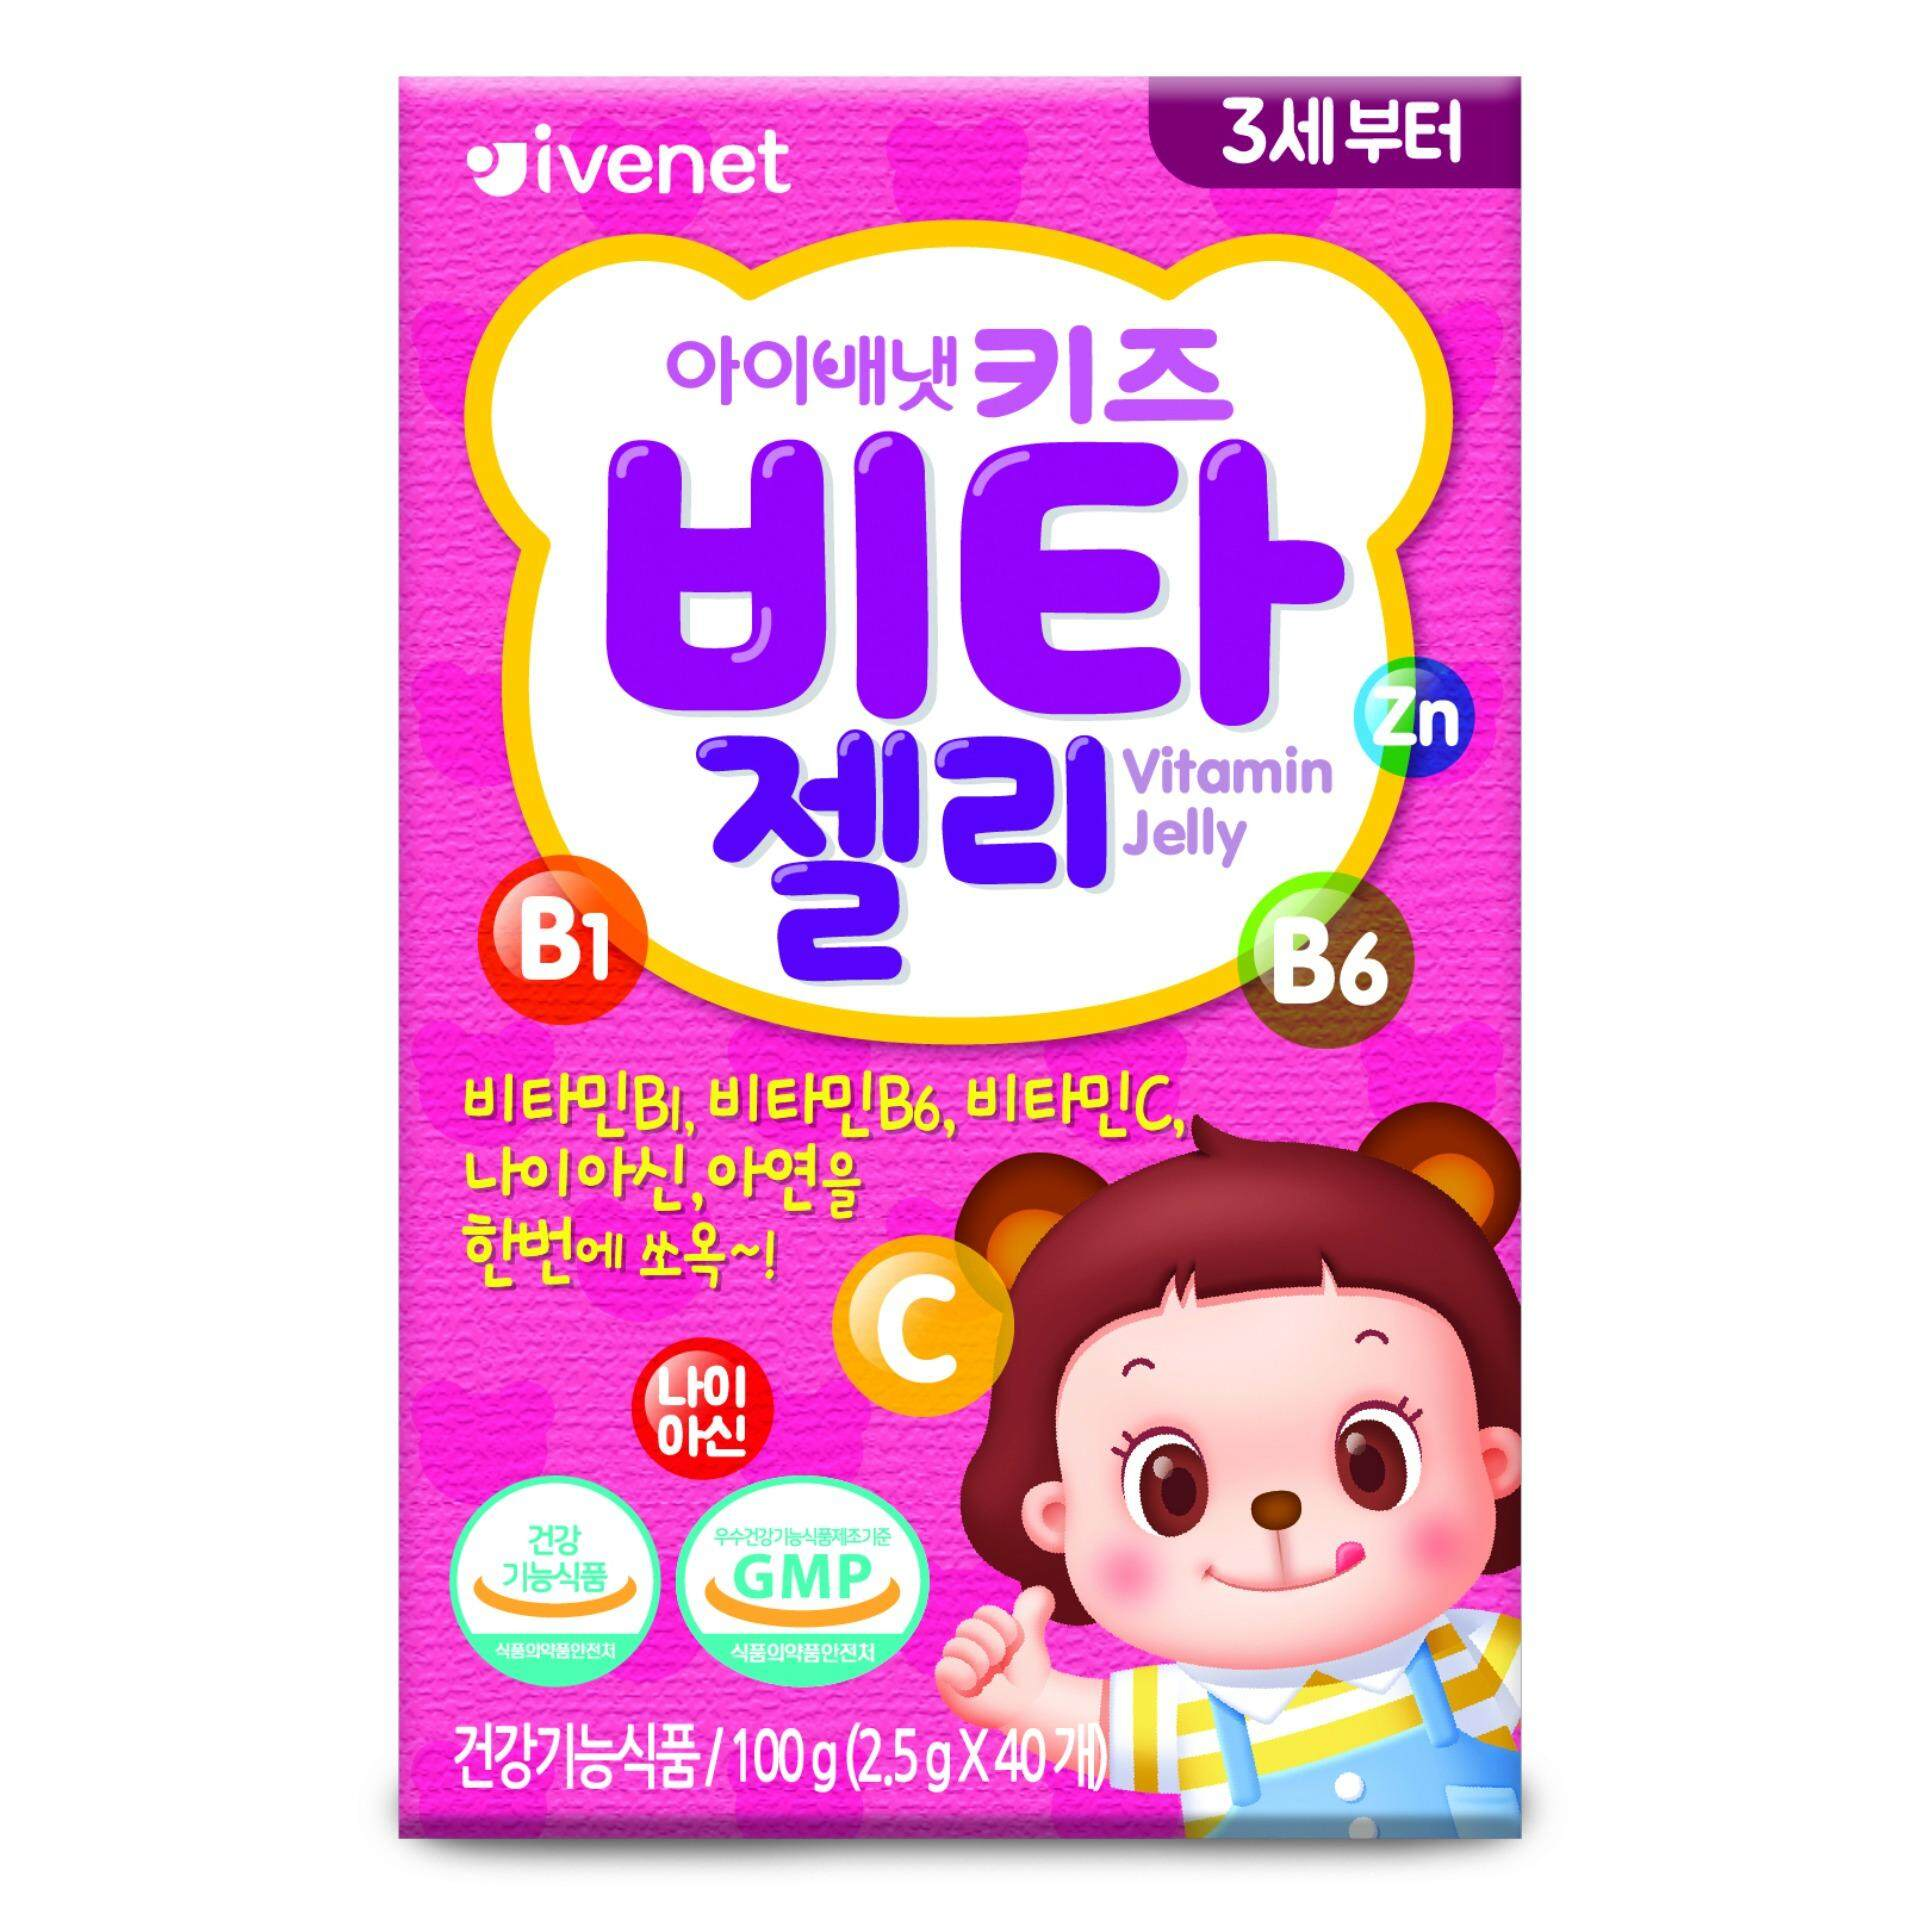 Ivenet Kids Vitamin Jelly, 2.5g x 40 chewable tablets